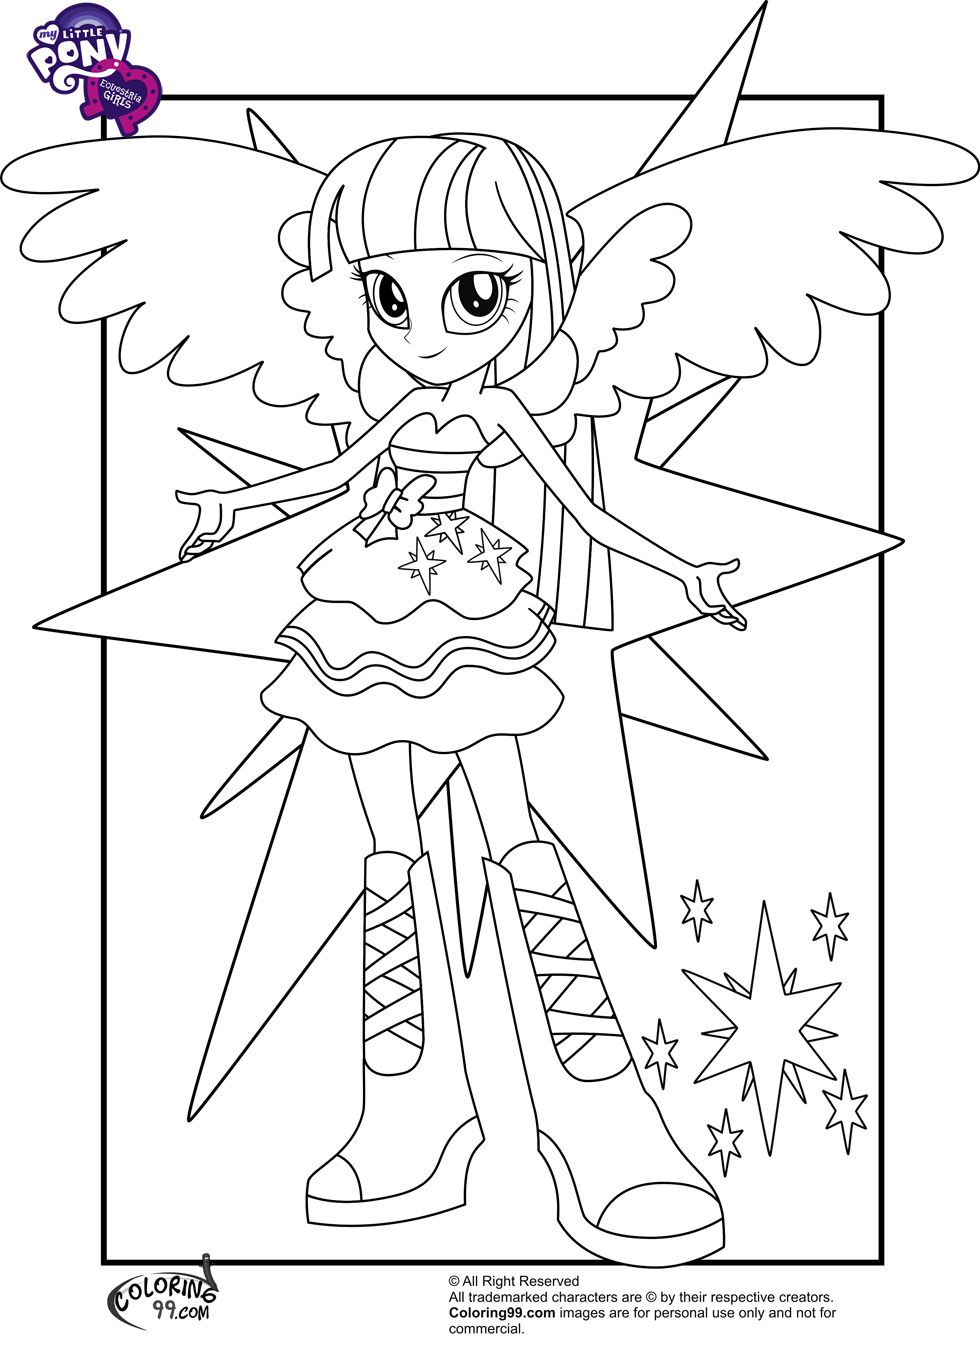 Coloring pages of my little pony games